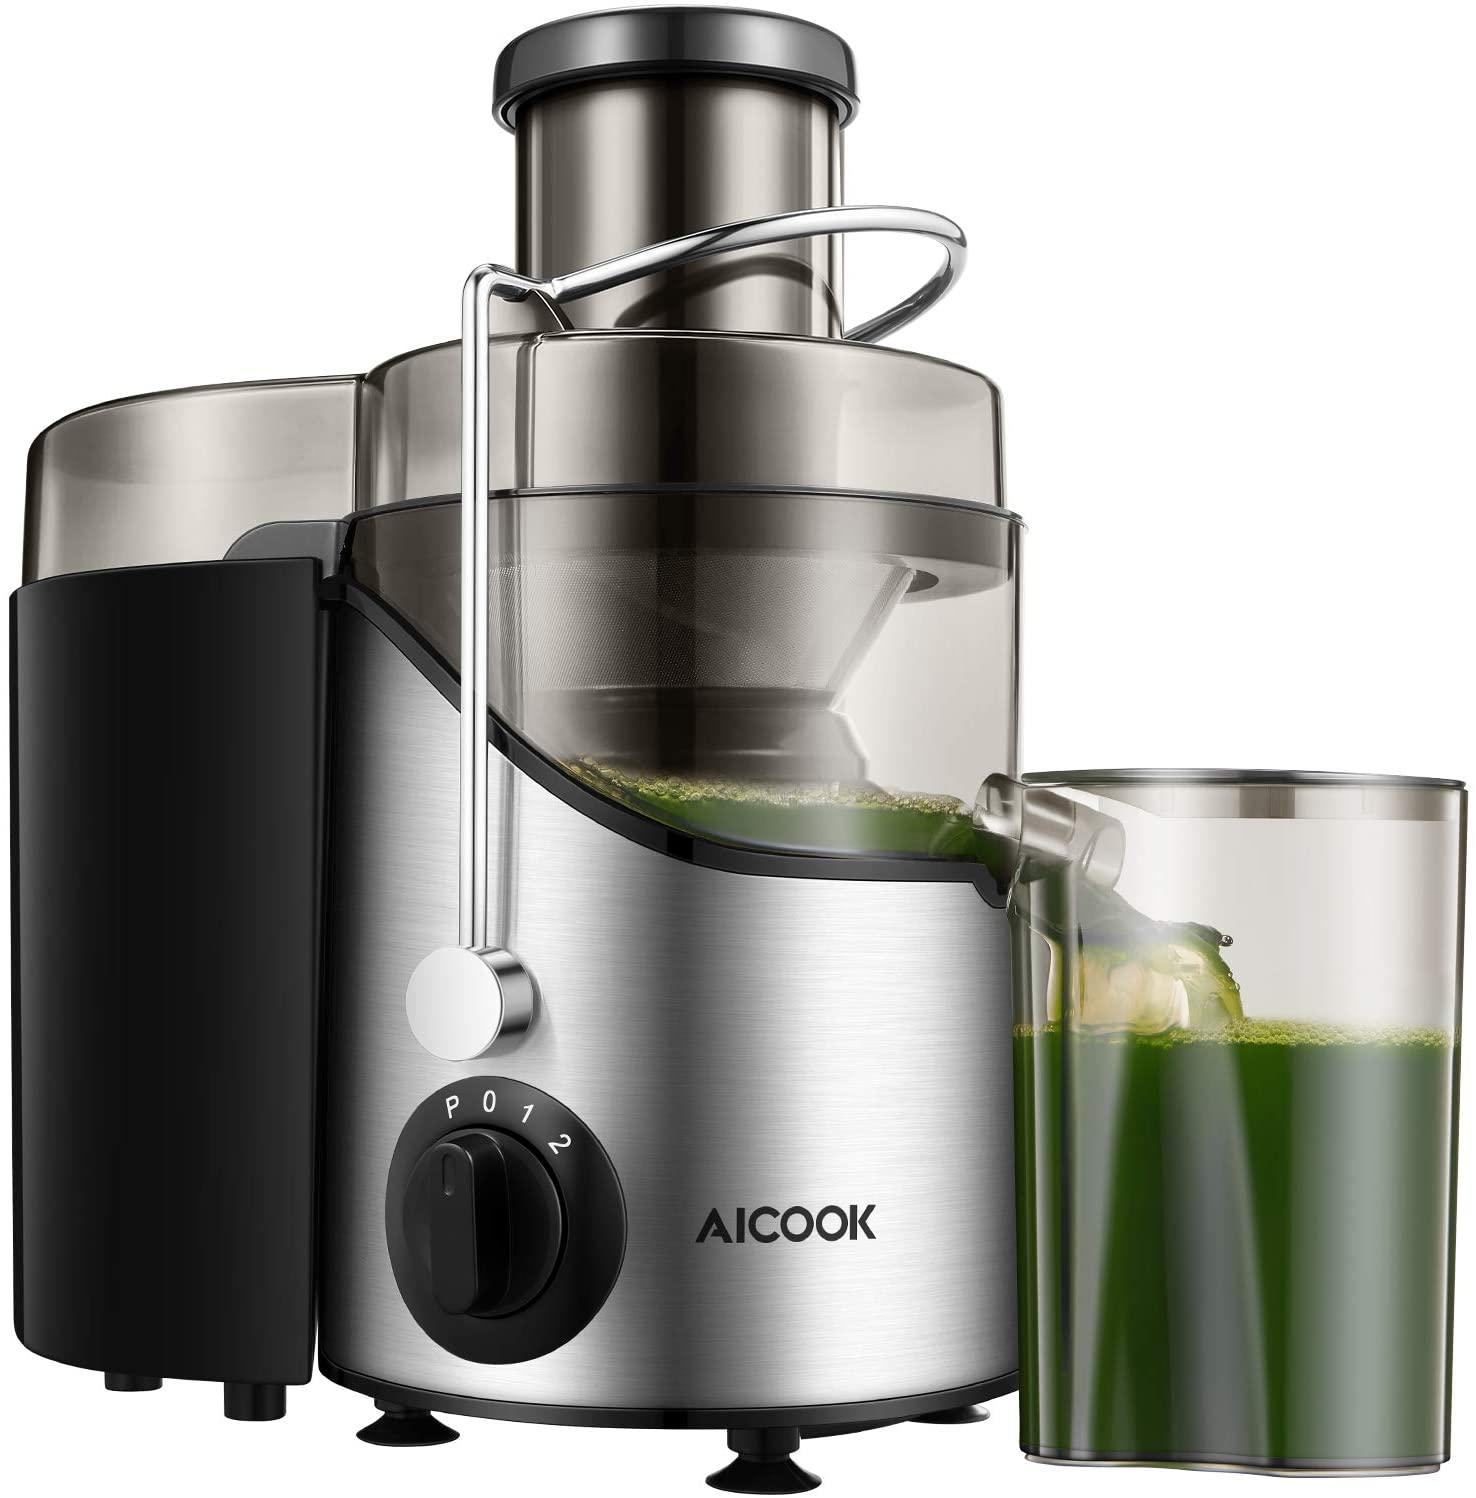 Centrifugal juicer from AICOOK